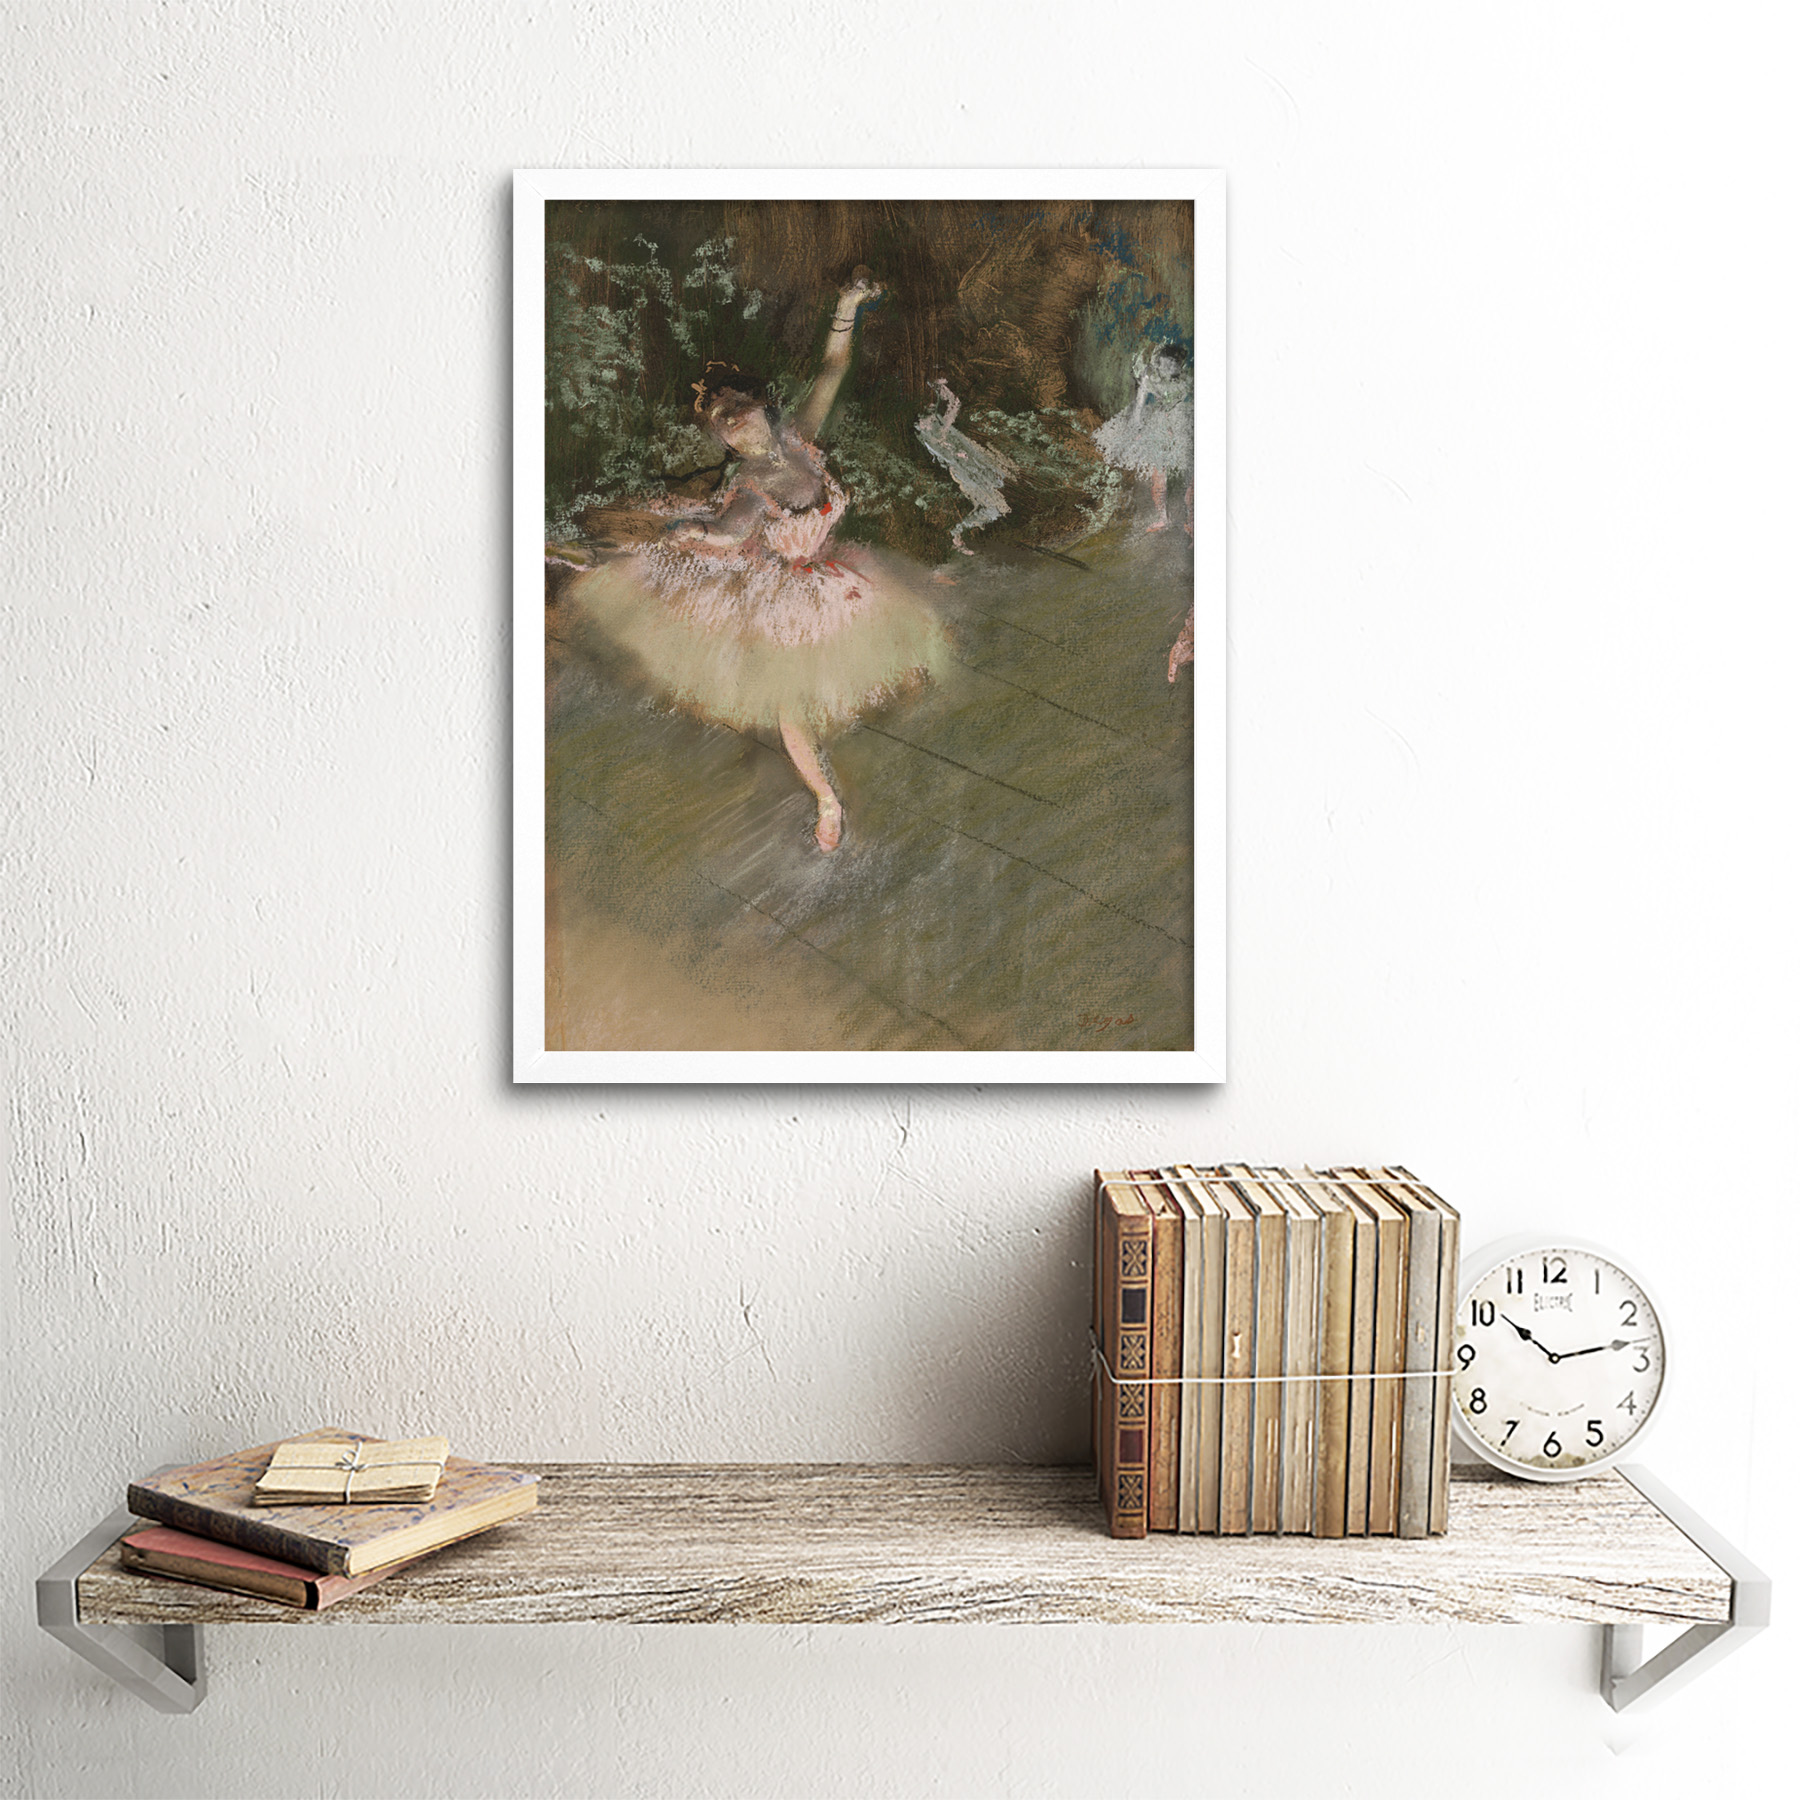 Edgar-Degas-The-Star-Art-Print-Framed-12x16 thumbnail 18